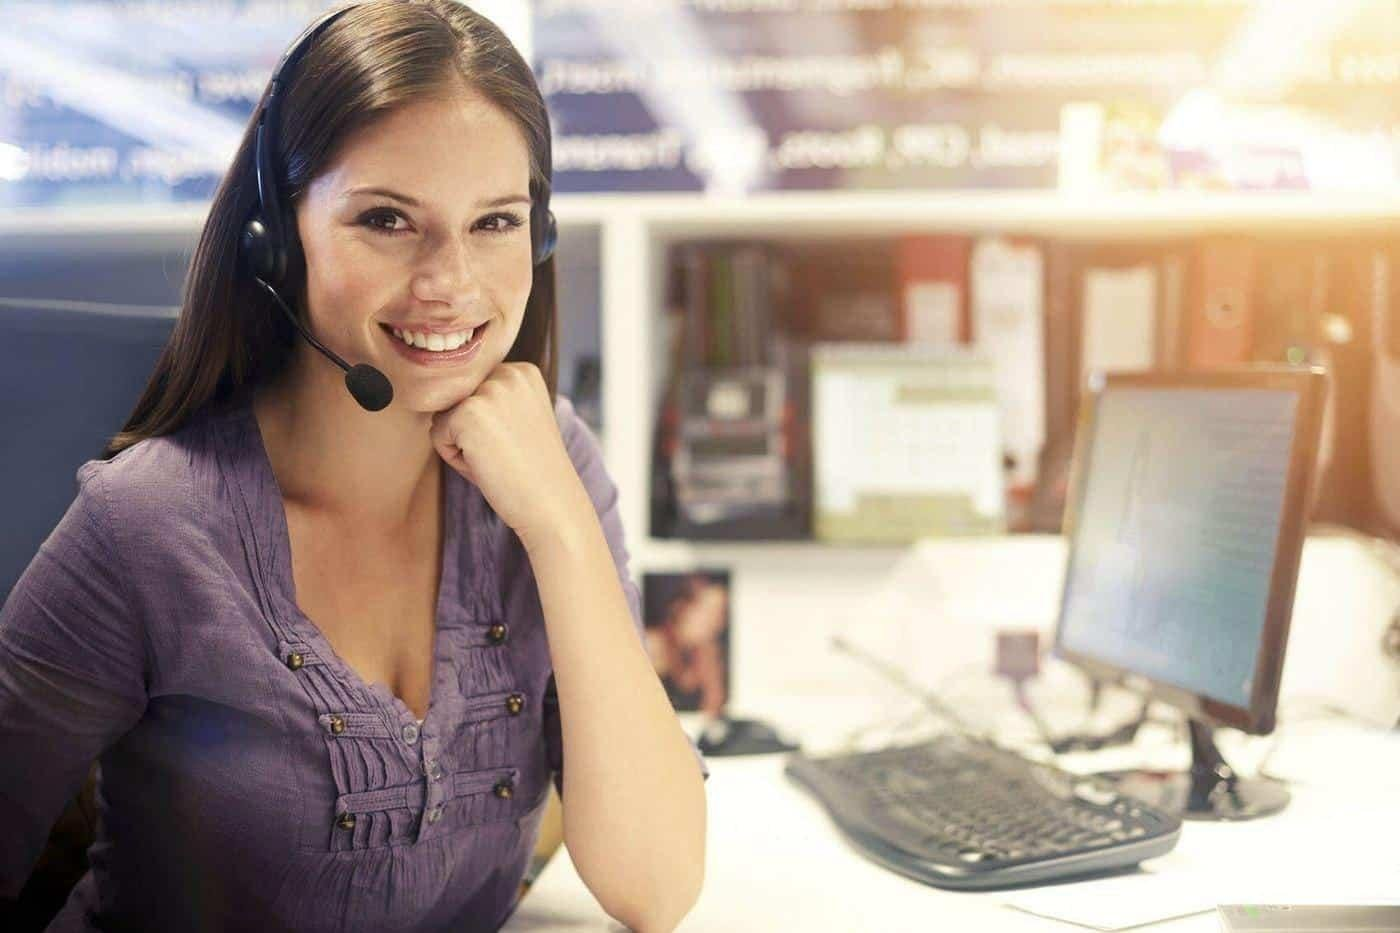 Experienced Answering Service